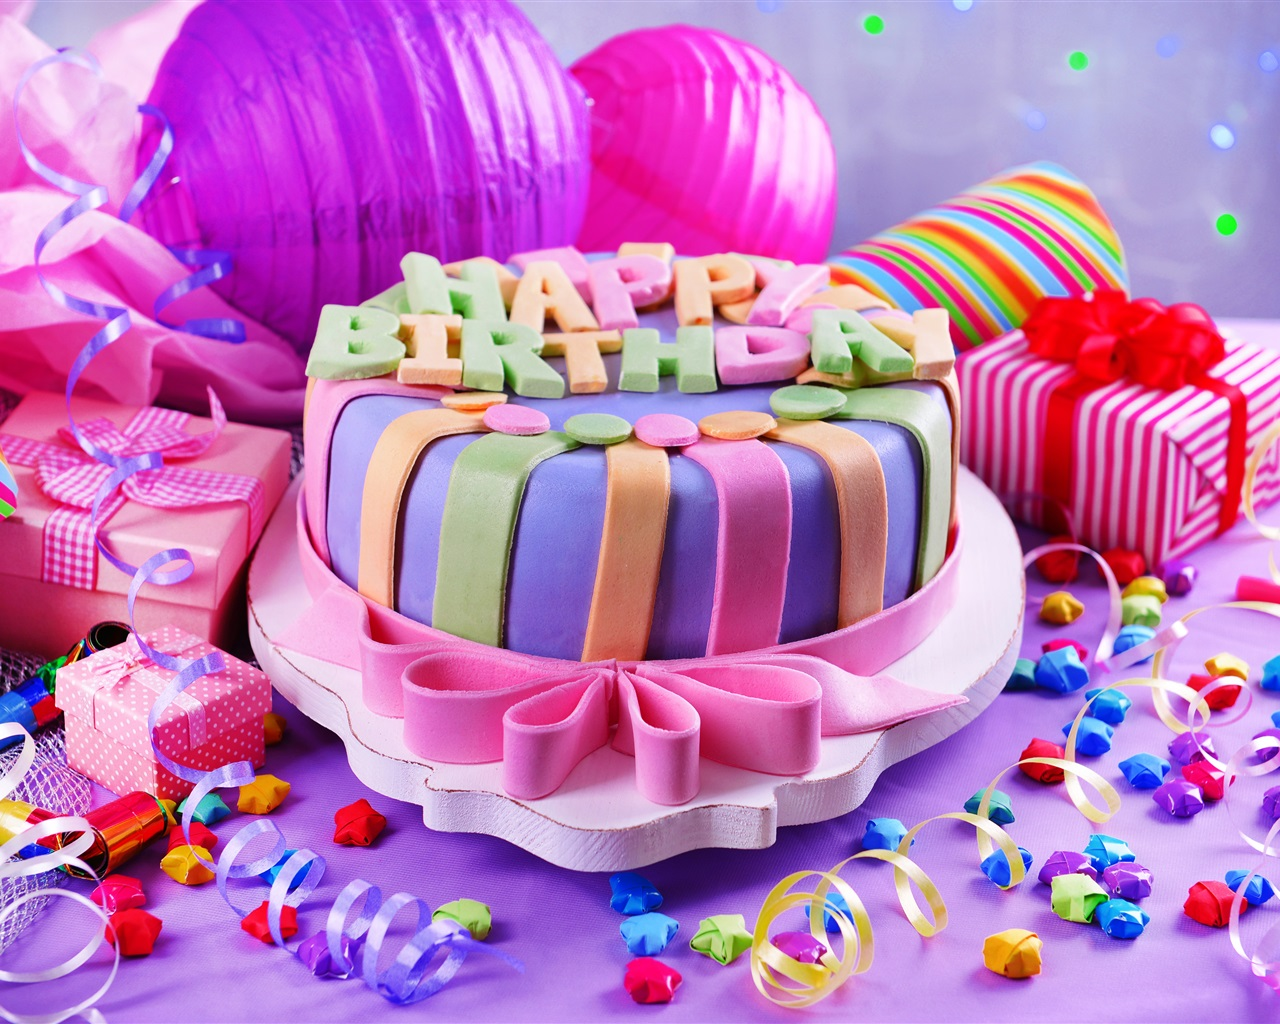 Wallpaper Happy Birthday Sweet Cake Gifts Decoration